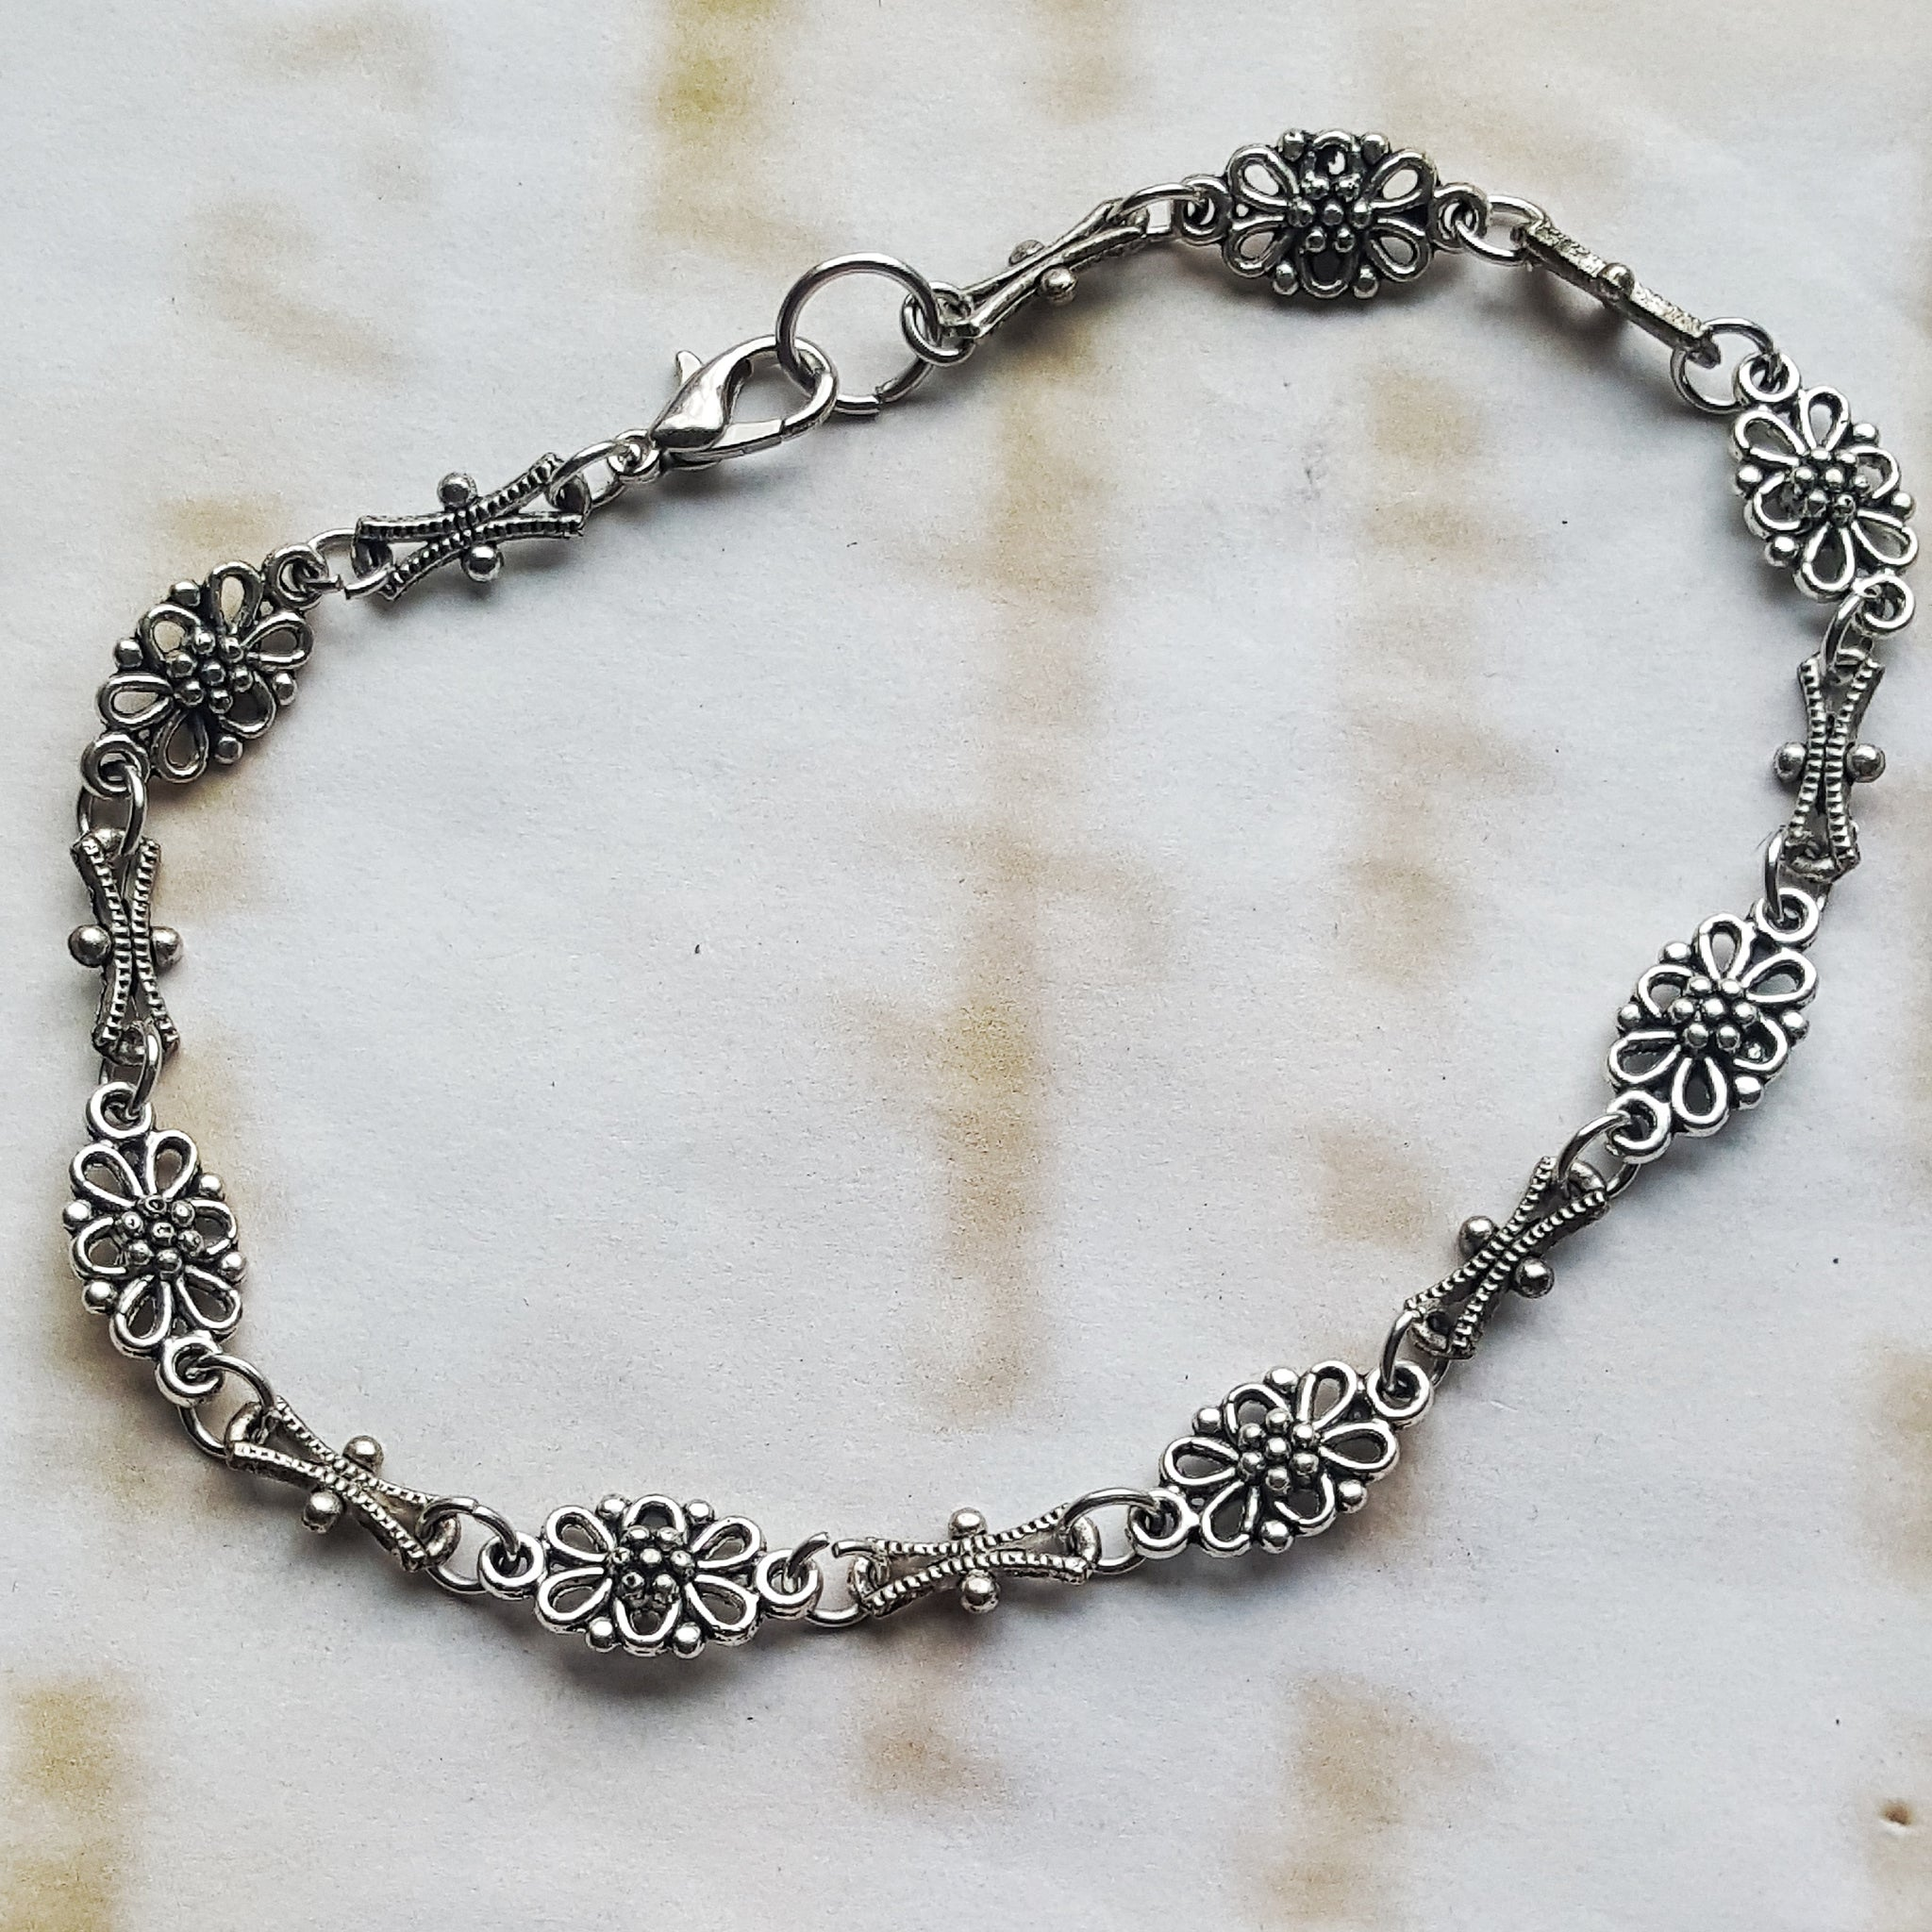 Silver Flower Anklet Christmas Gift Idea for Her - DRAVYNMOOR